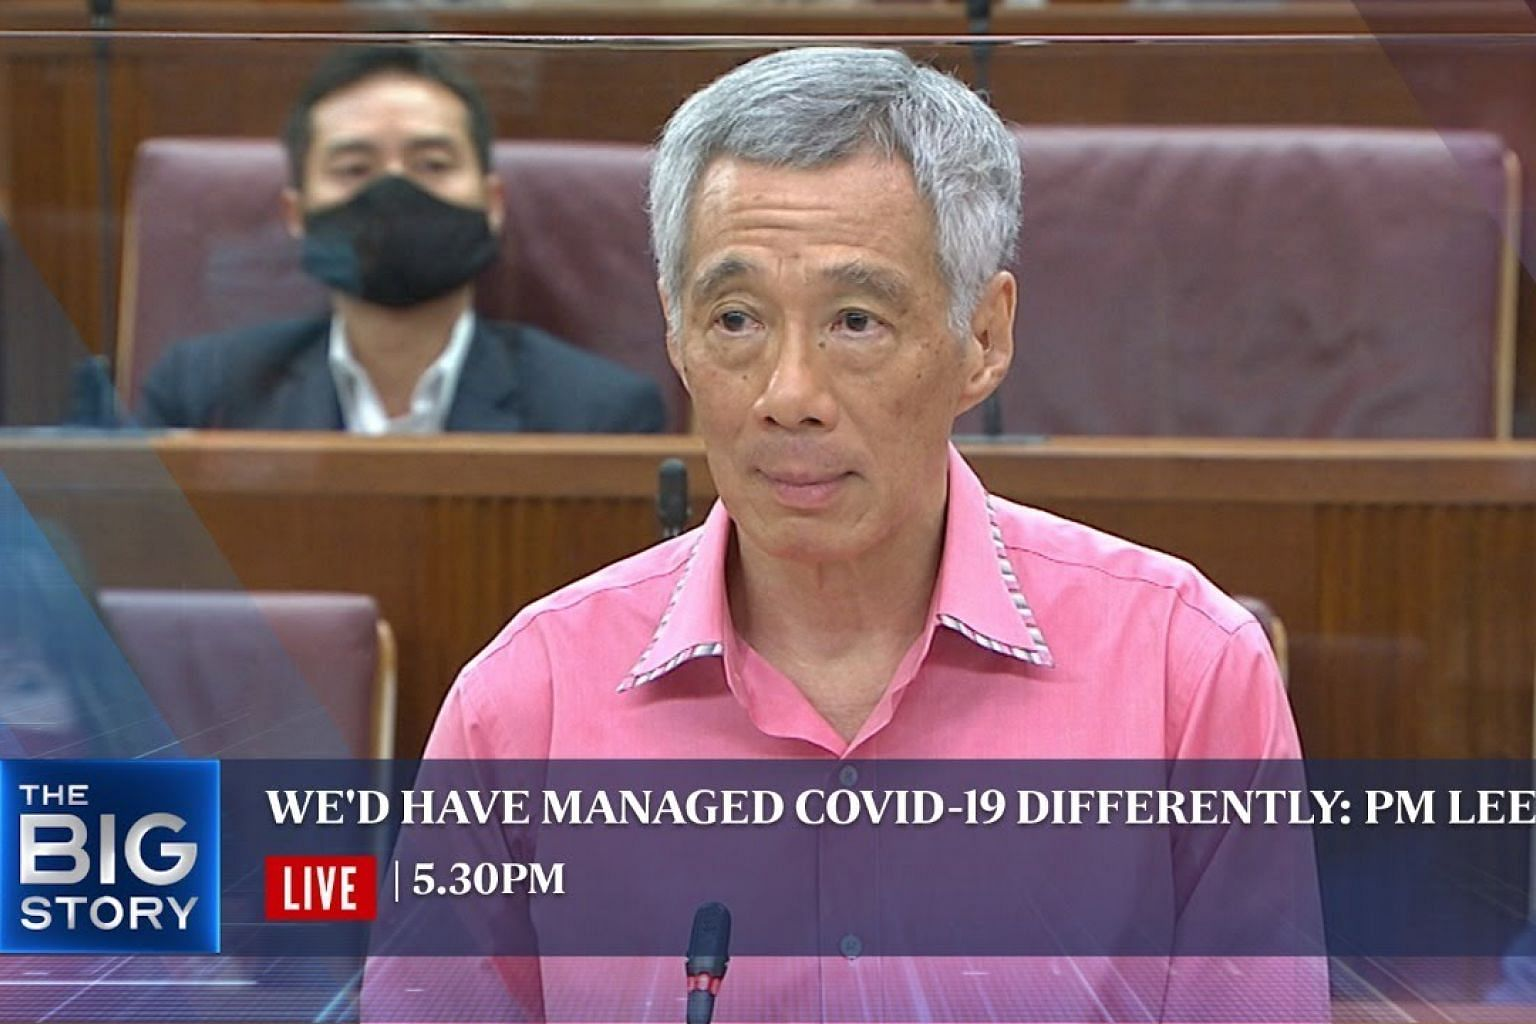 PM Lee delivers speech in Parliament on S'pore's response to Covid-19 crisis   THE BIG STORY